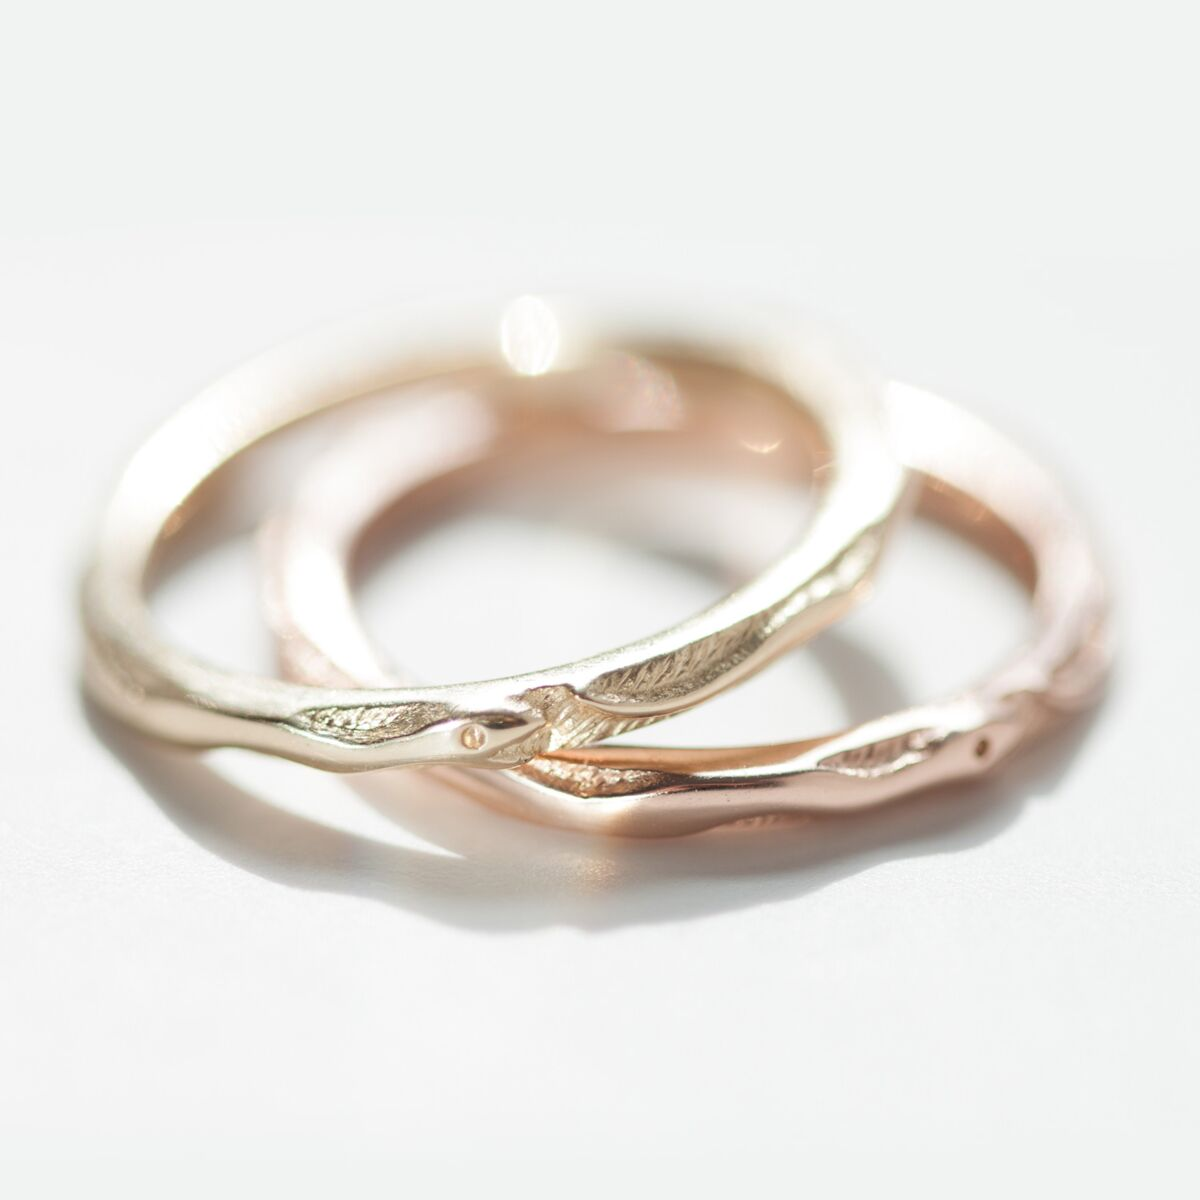 Serpent D'eau Ring image